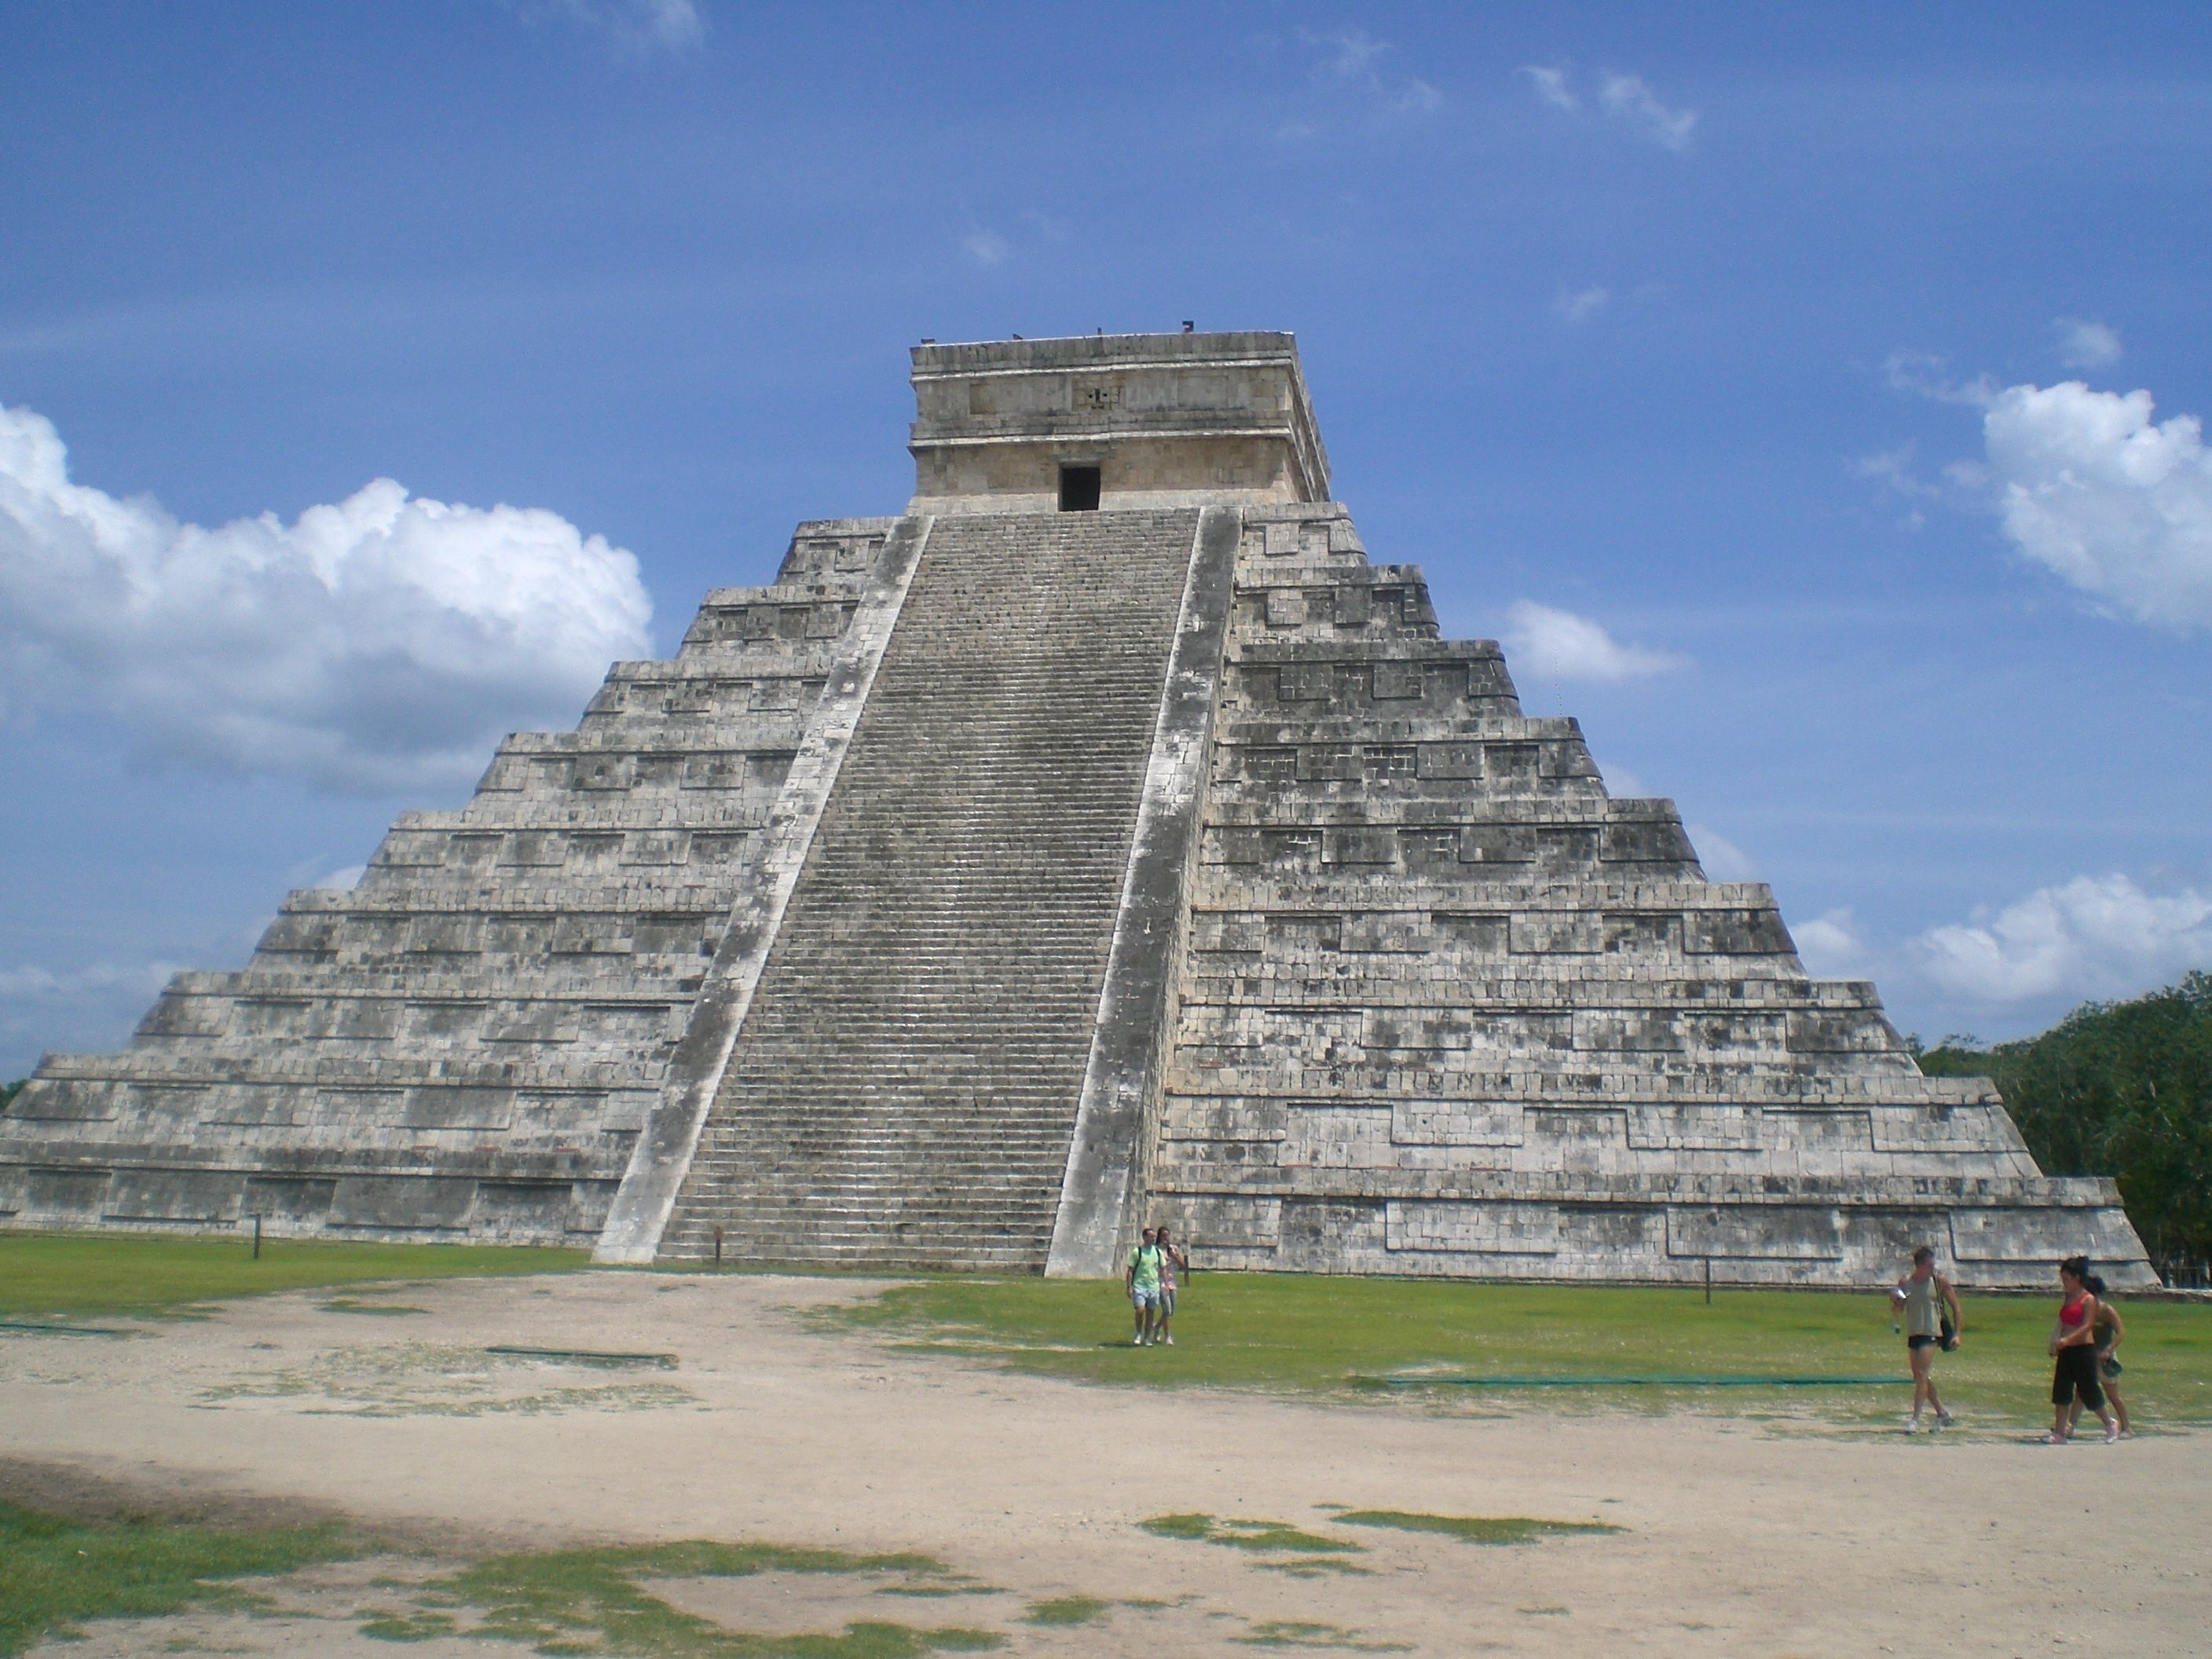 chichen itza cancun one of the wonders of the world one of the 7 wonders of the world favorite places spaces cancun it is and the o jays